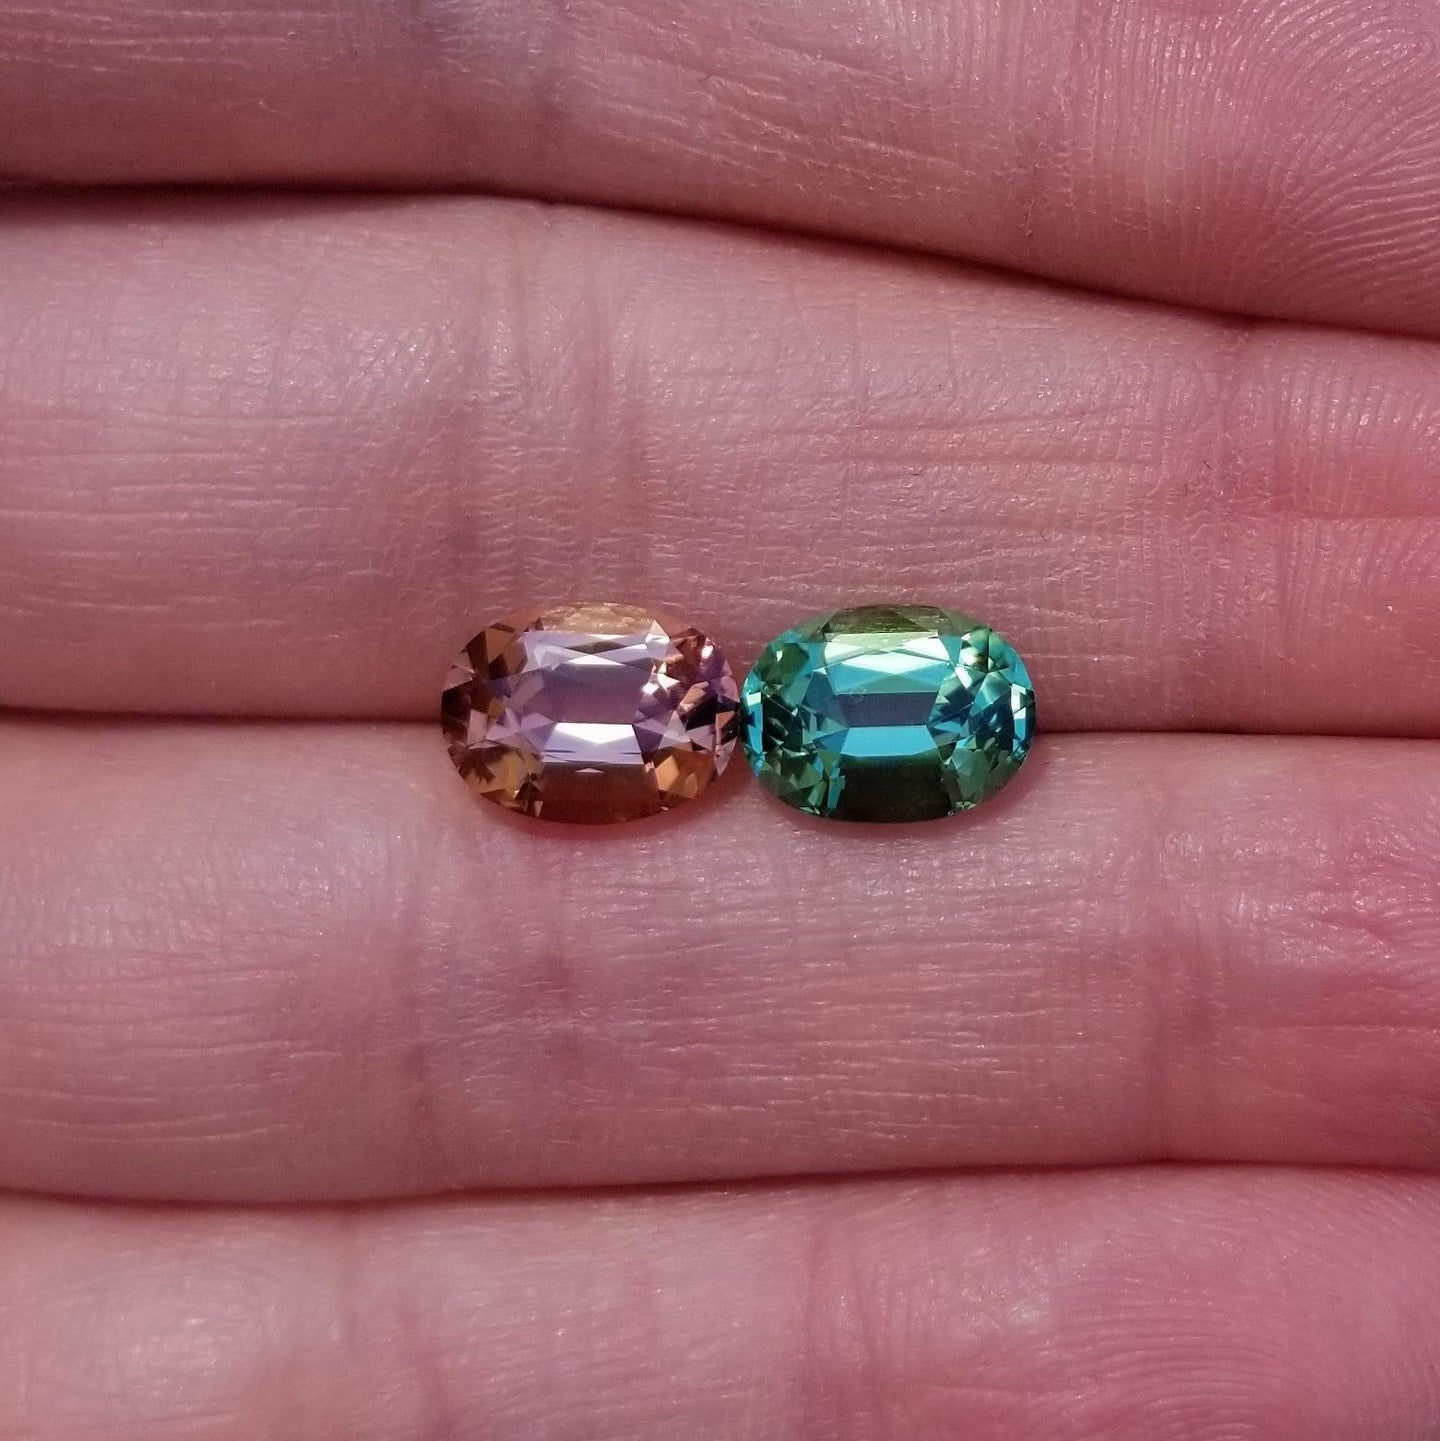 5.25ctw Peach/Blue-Green Tourmaline Matched Pair